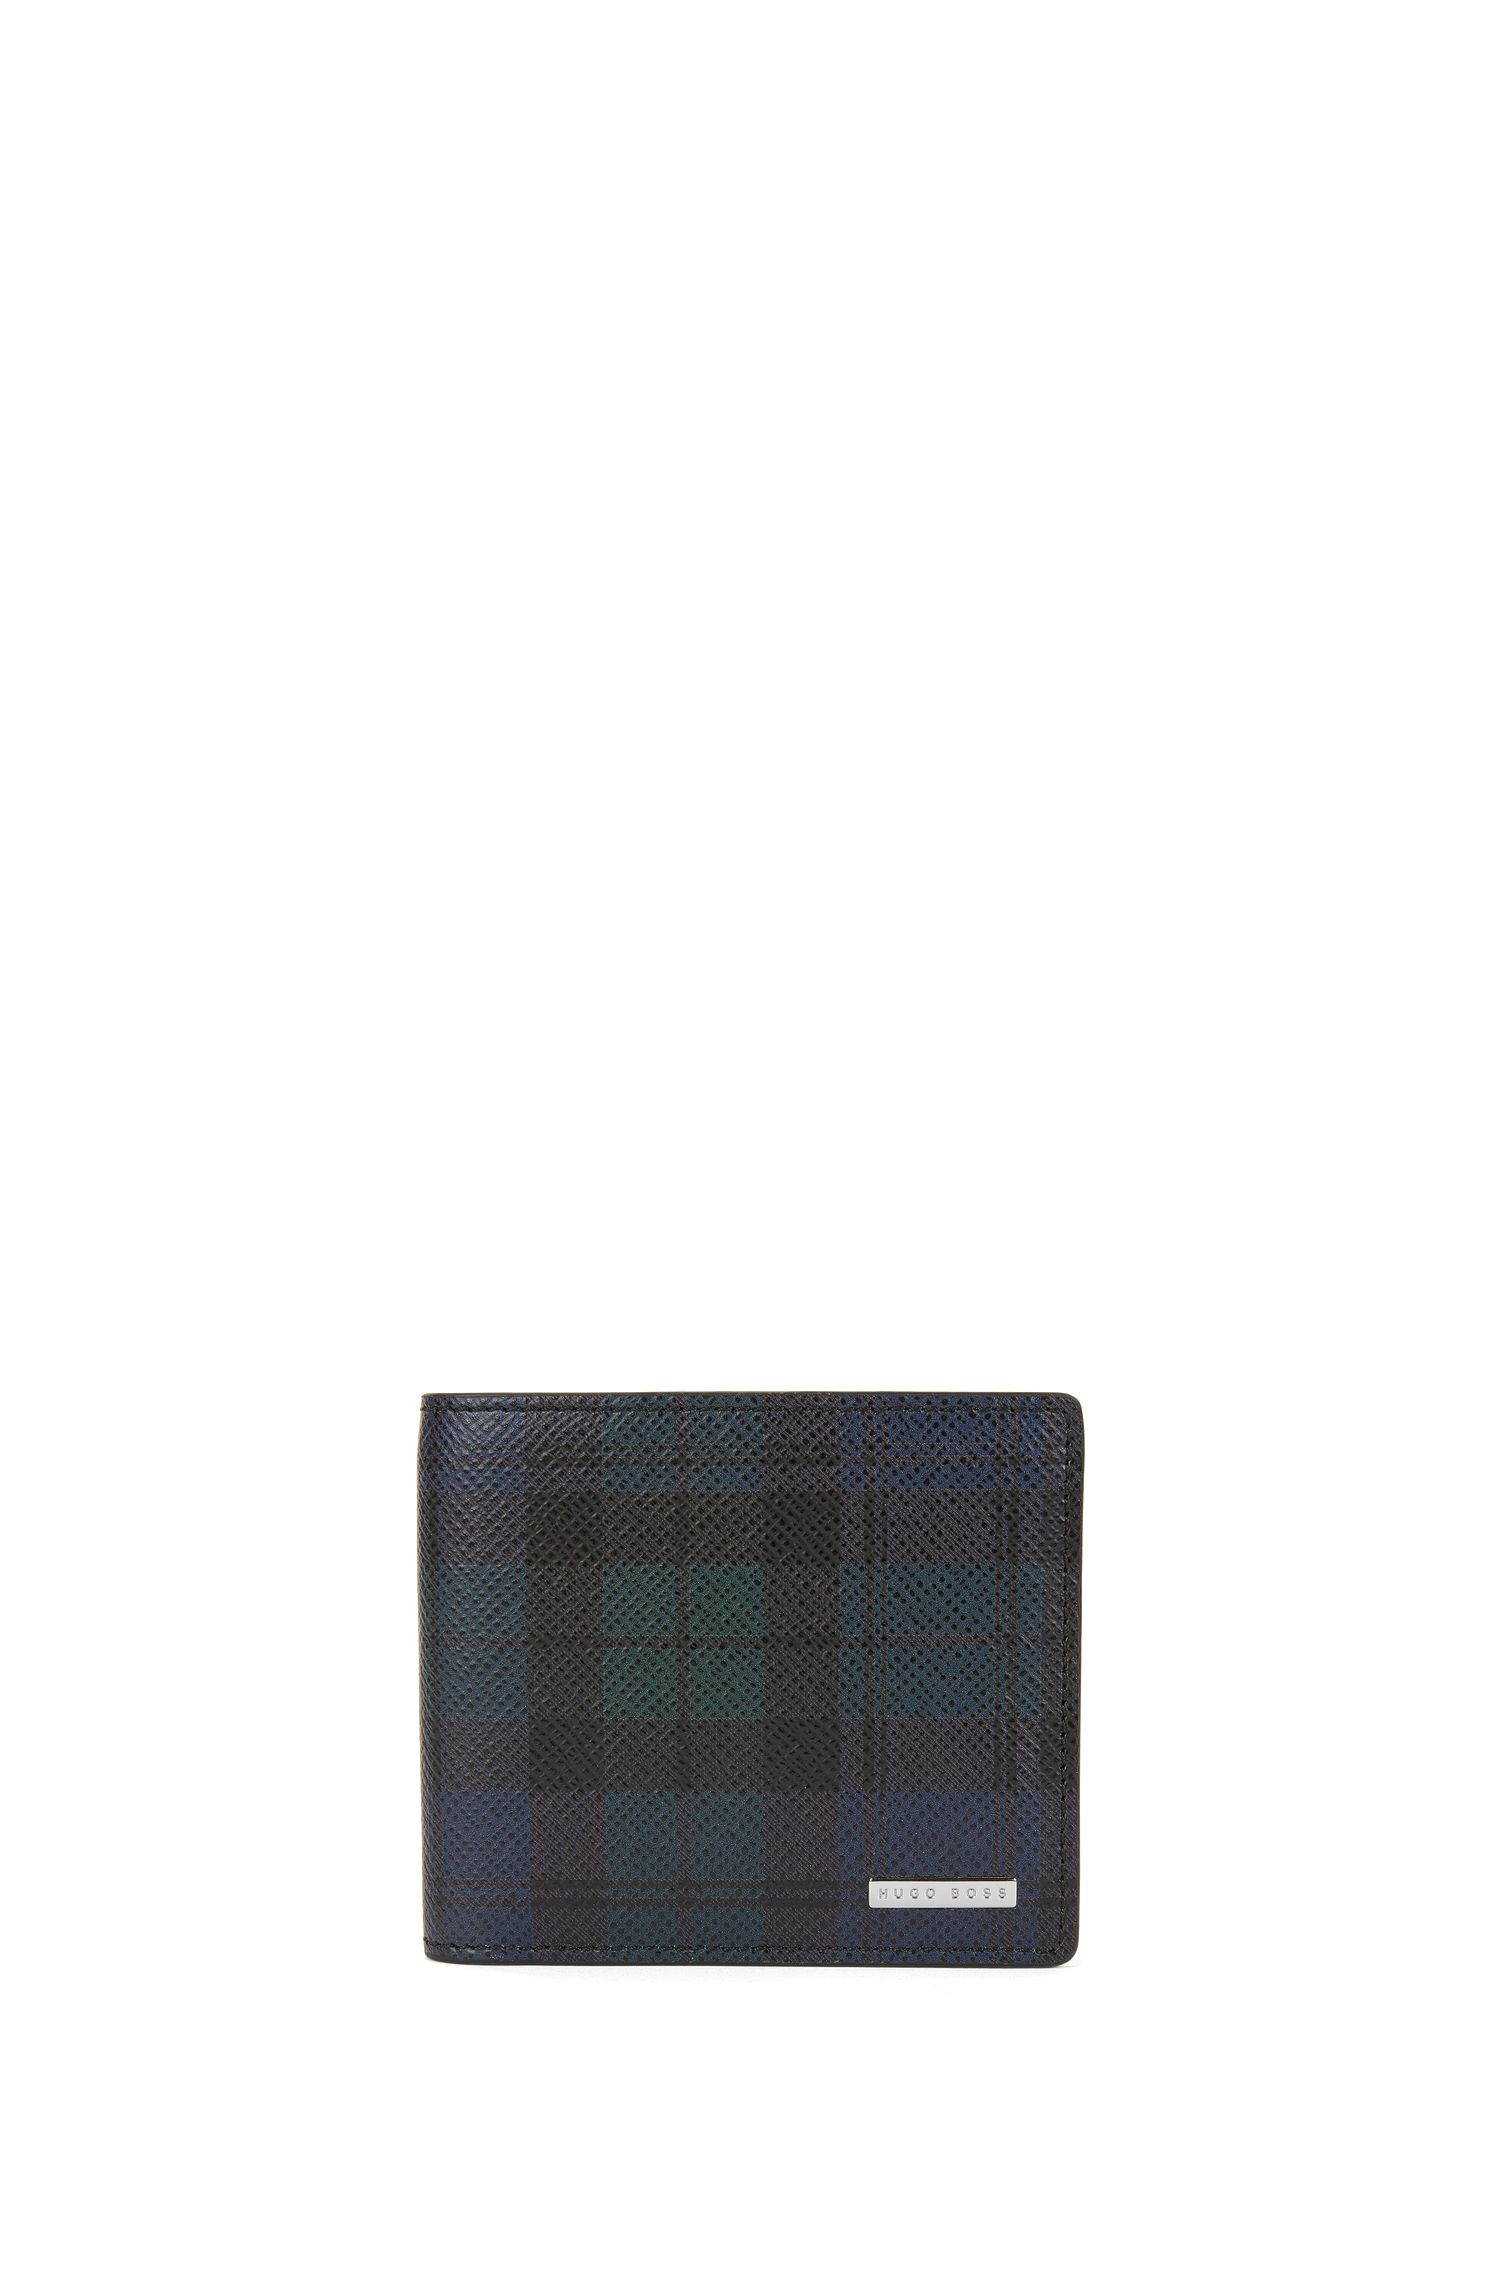 Signature Collection bifold wallet with eight card slots in printed palmellato leather